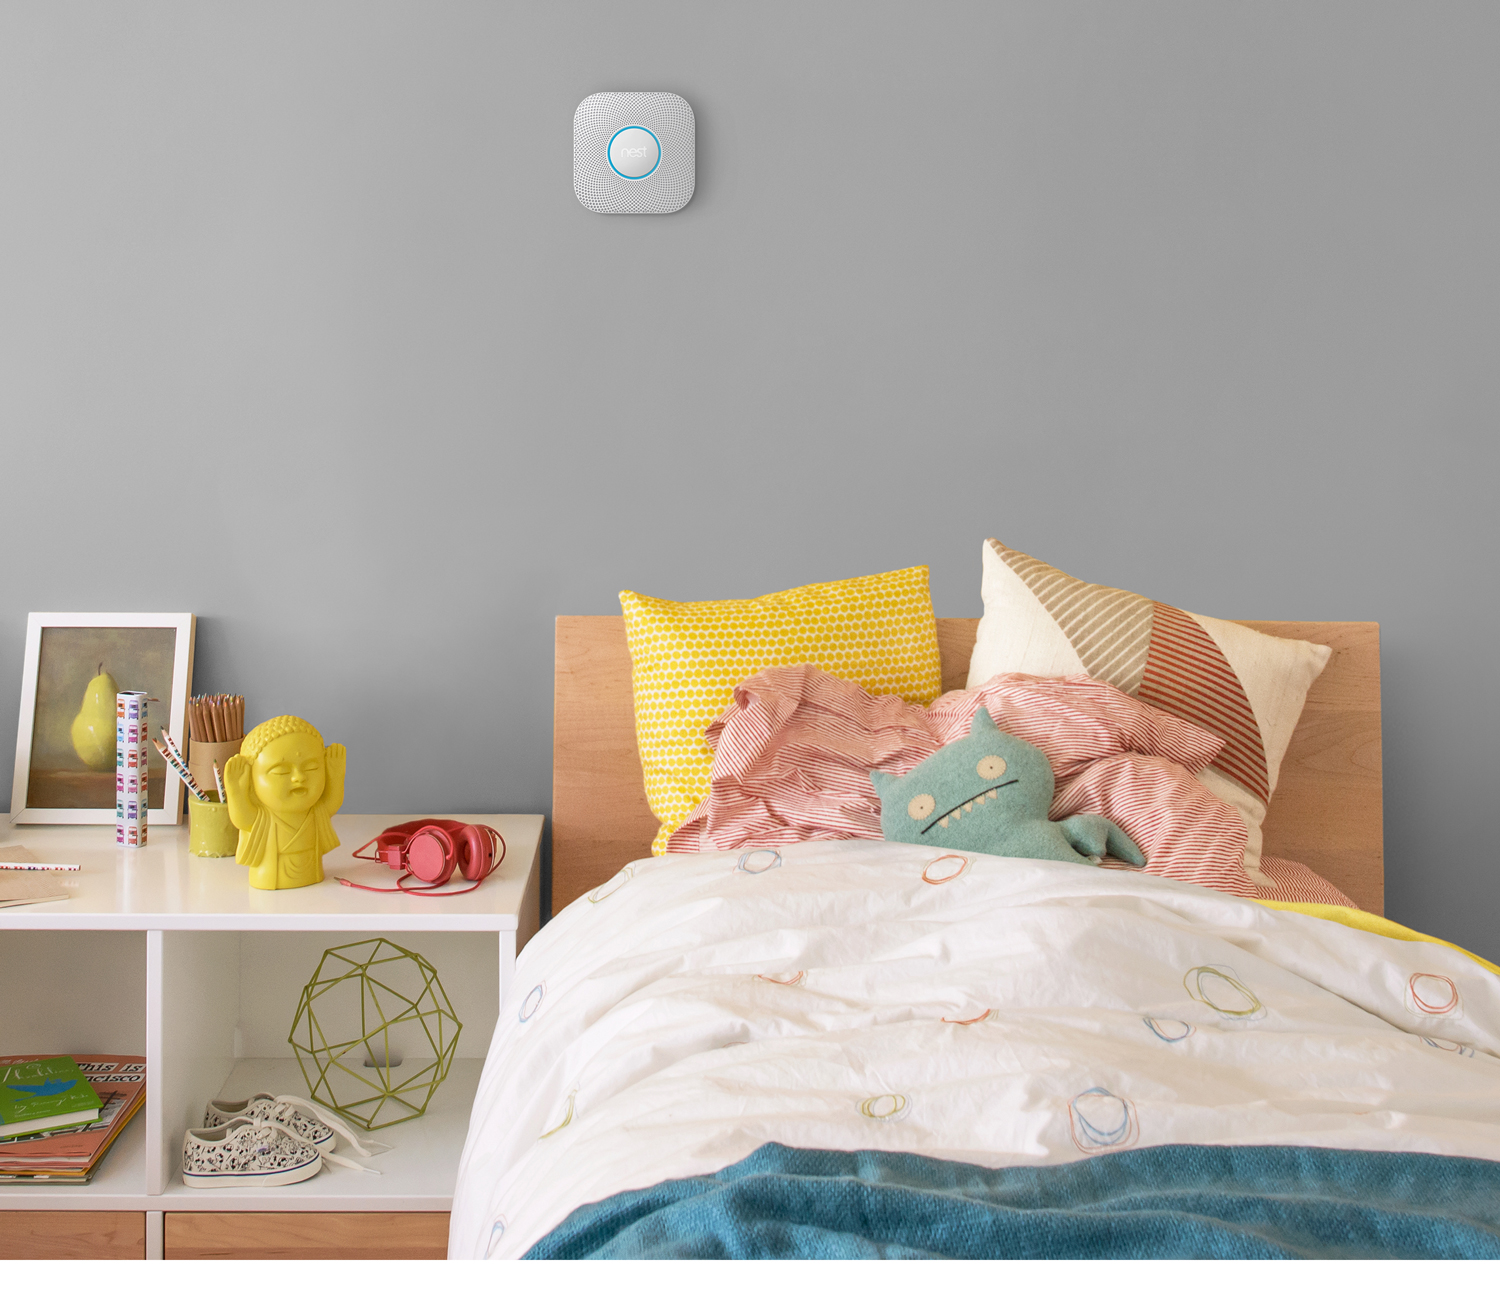 Rauchmelder Im Schlafzimmer Home Security: Nest Protect Rauchmelder Im Test › Macmaniacs.at